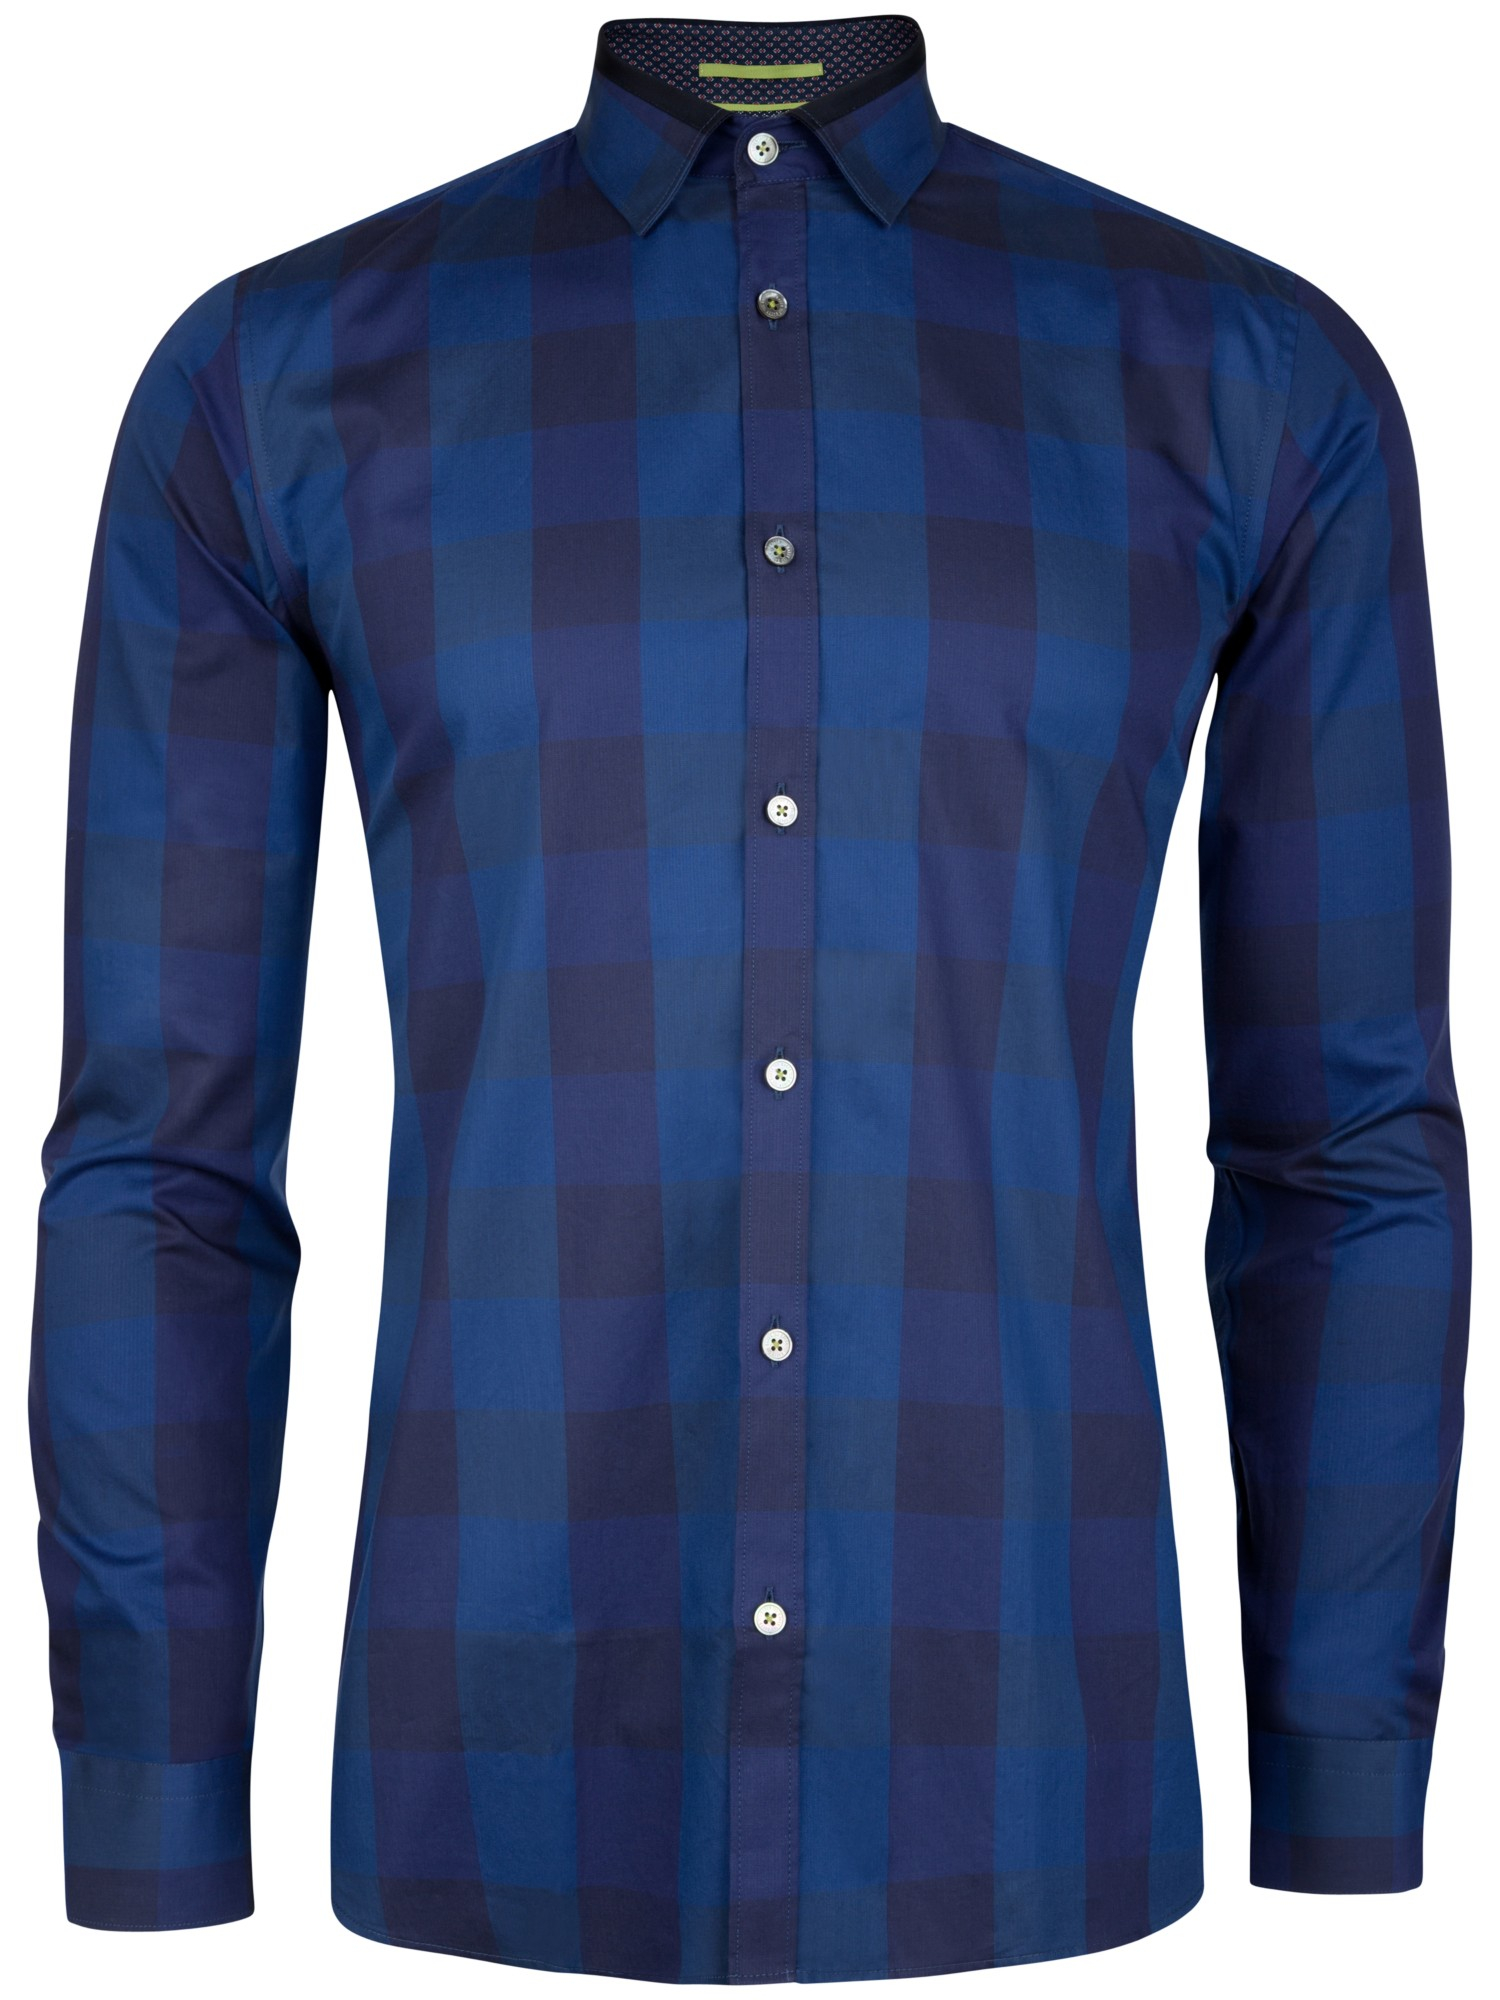 Ted baker lostone check shirt in blue for men lyst for Ted baker blue shirt